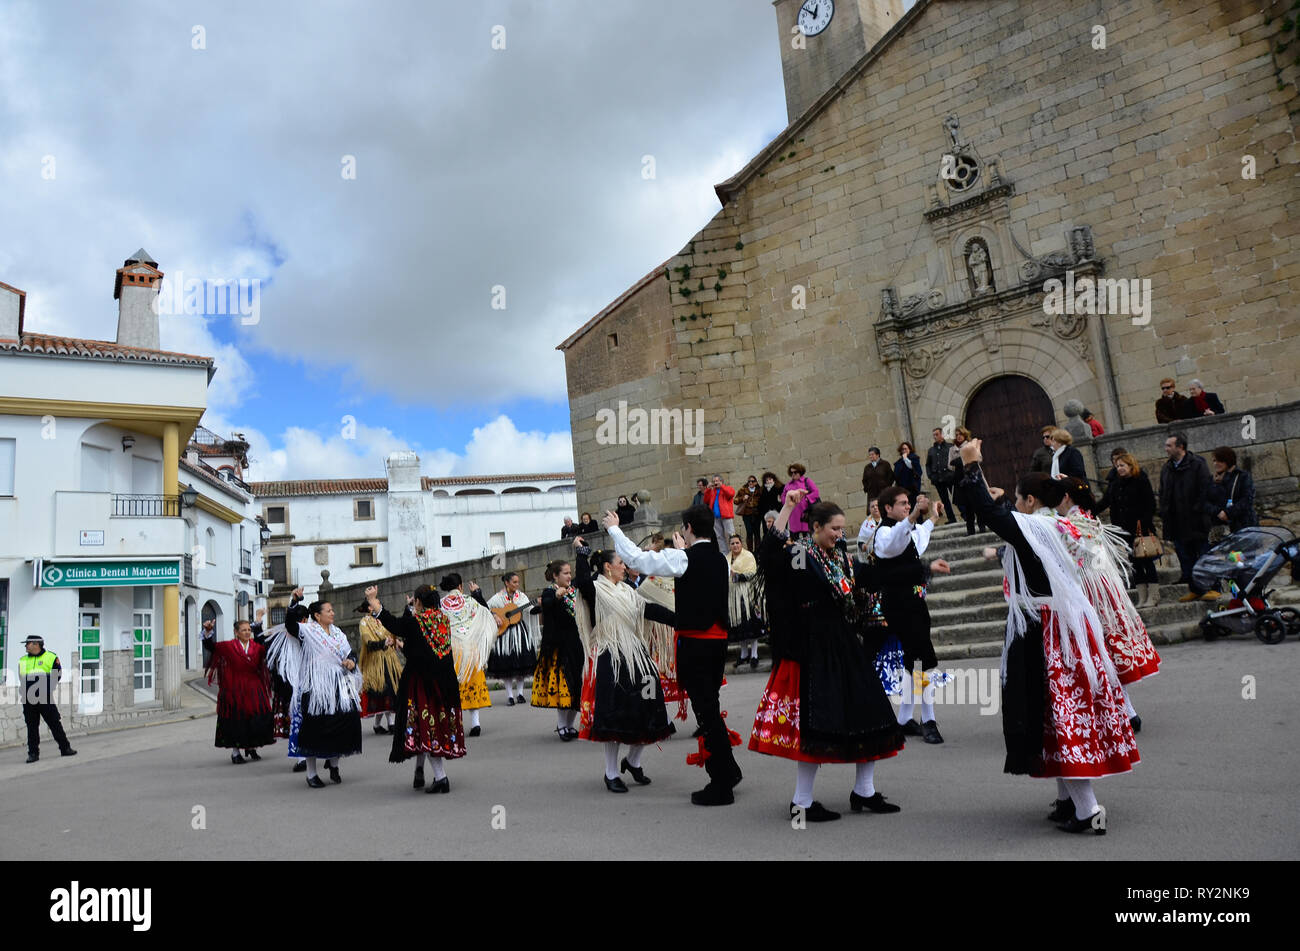 Malpartida de Caceres, Spain - February 15, 2015: Feast of the Patatera with traditional dresses and regional dances Stock Photo